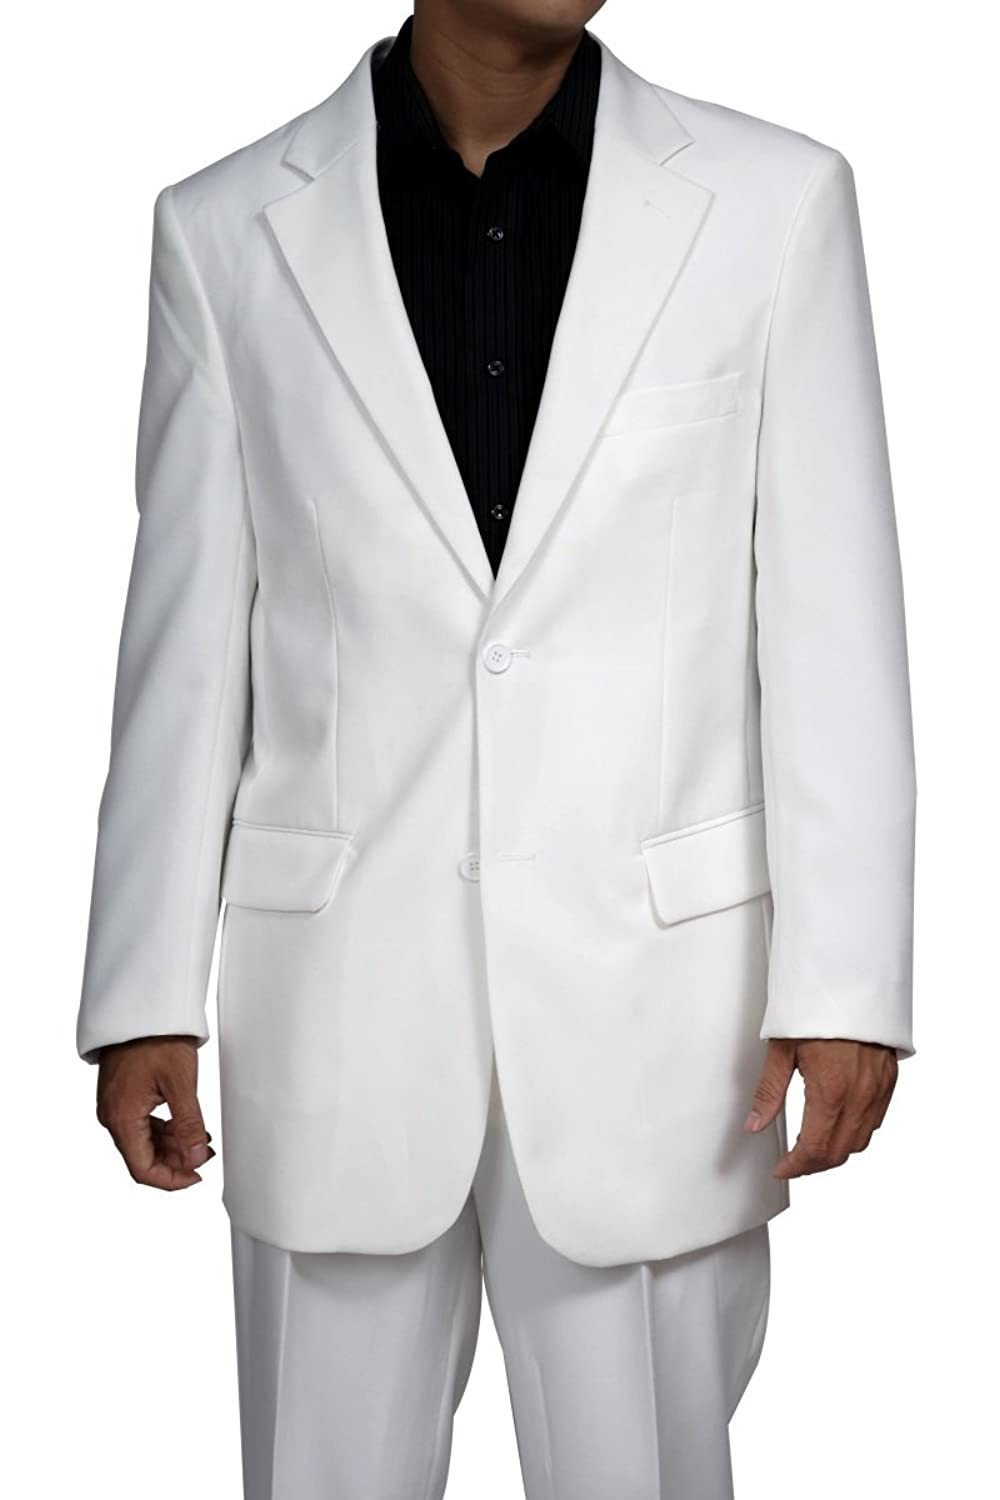 60s -70s  Men's Costumes : Hippie, Disco, Beatles New Mens 2 Button White Dress Suit - Includes Jacket and Pants $99.90 AT vintagedancer.com